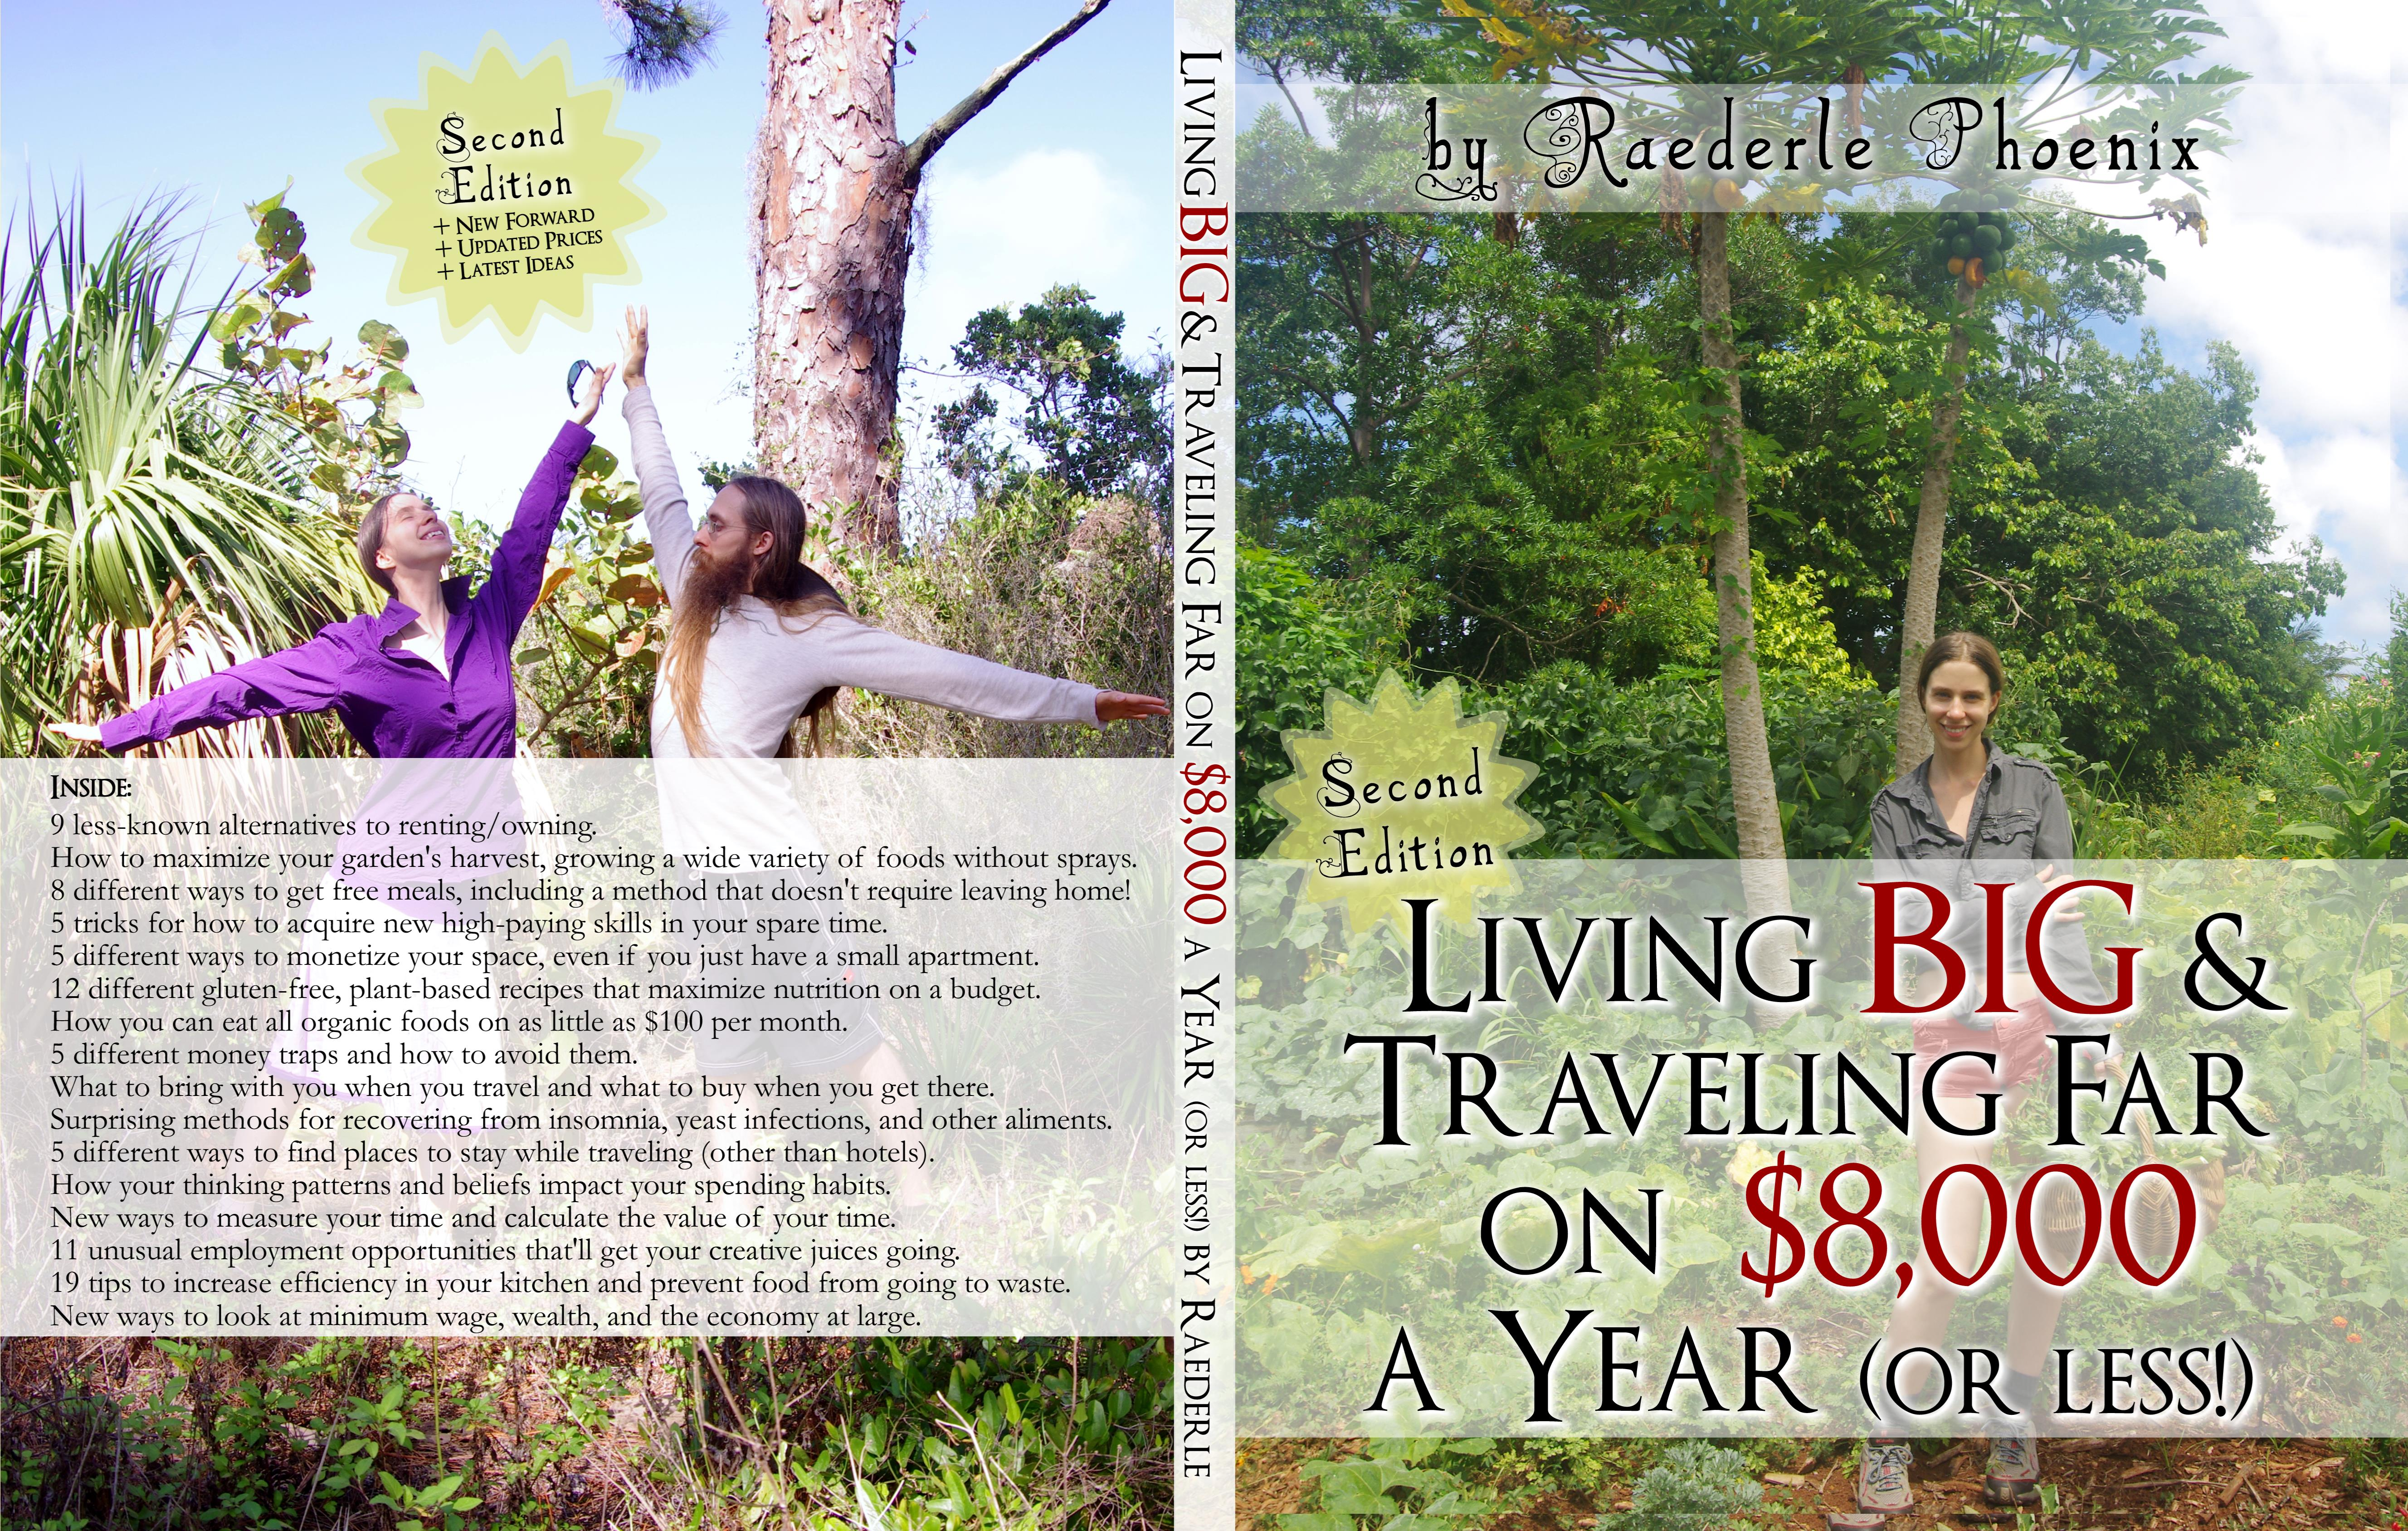 Living Big & Traveling Far on $8,000 a Year (or Less!) cover image